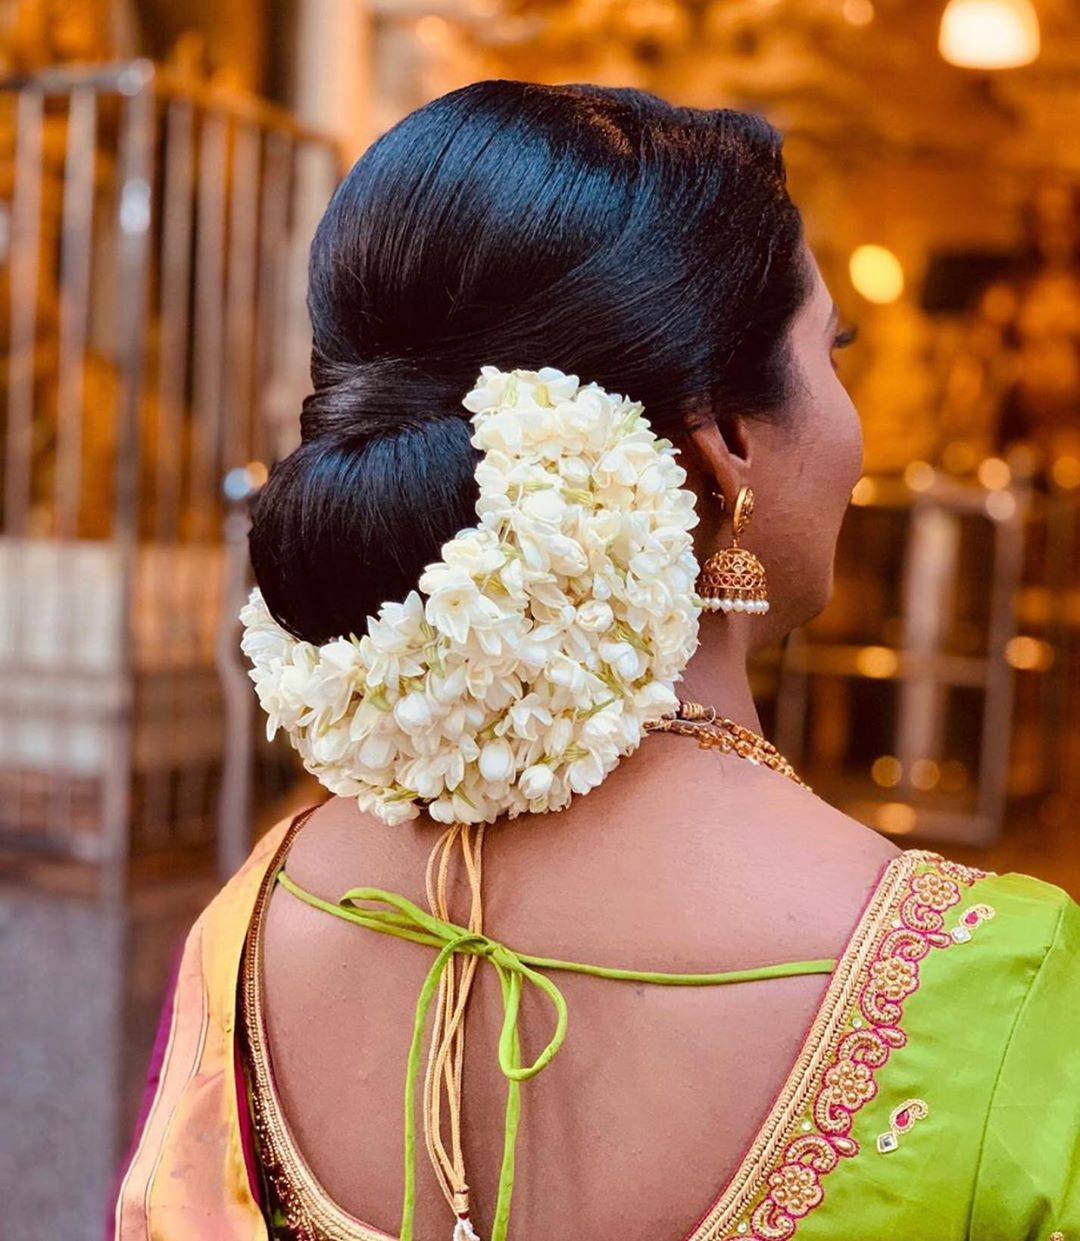 970 Likes 0 Comments The Wedding Makeoverz Theweddingmakeoverz On Instagram This Chignon Indian Bride Hairstyle Bridal Hair Buns Engagement Hairstyles